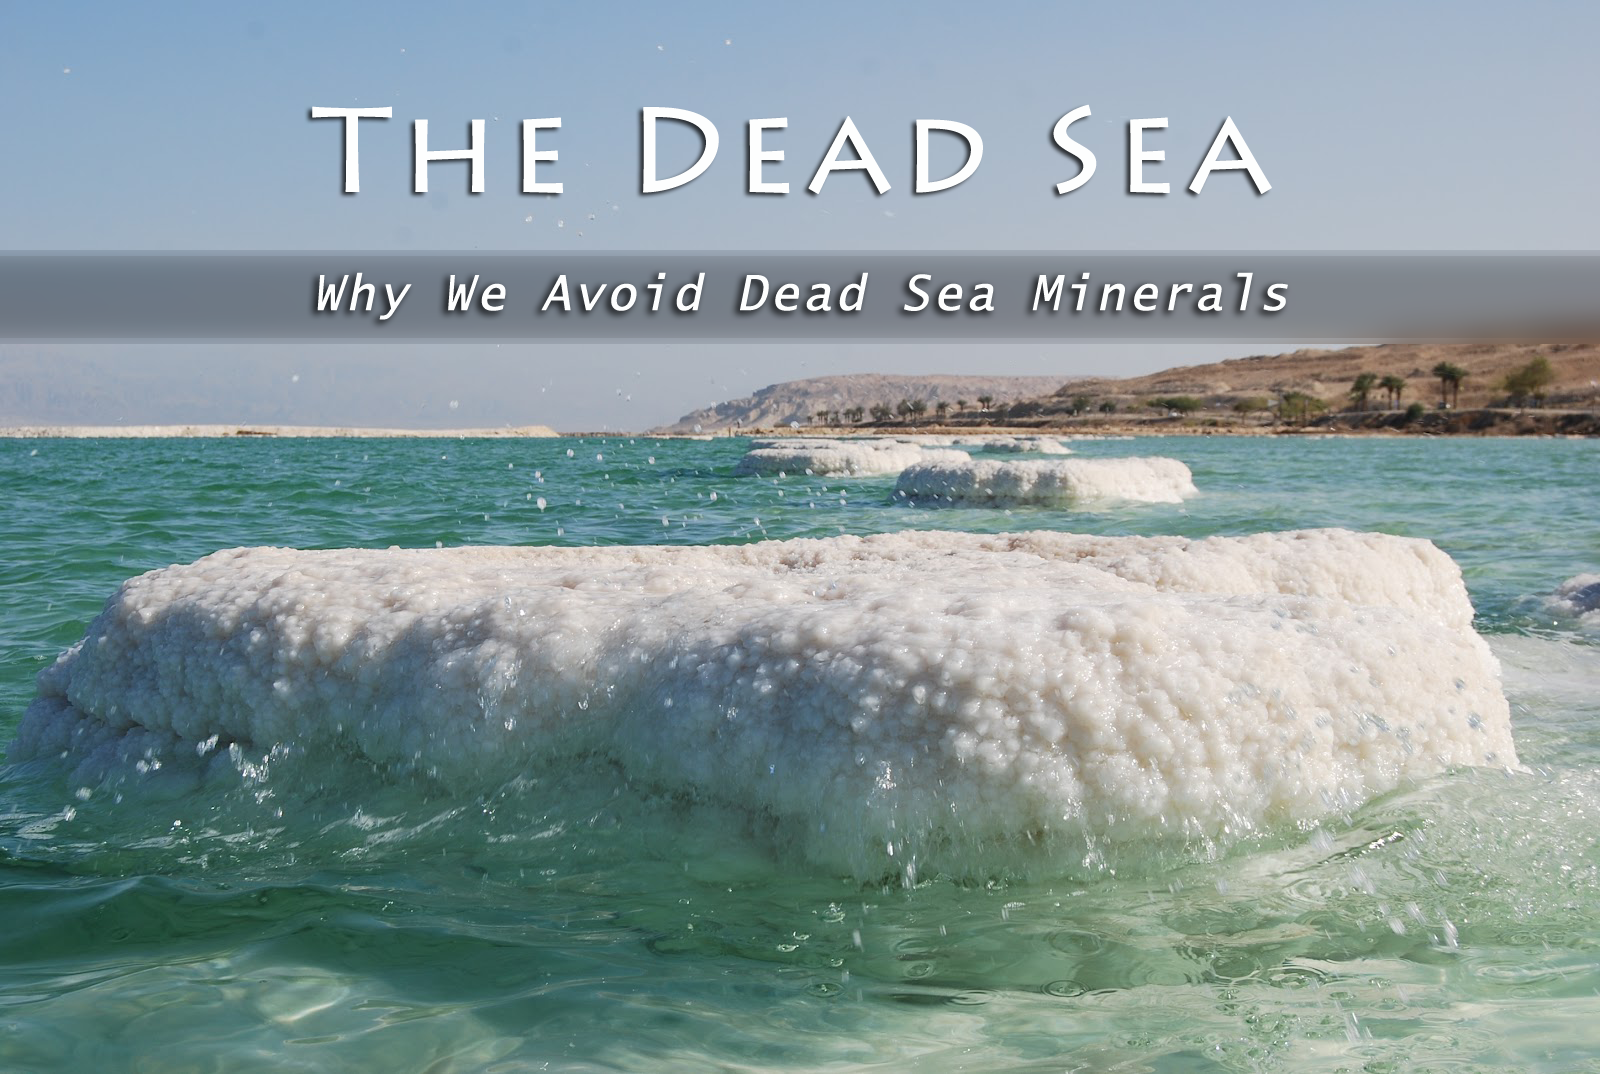 Why we avoid using Dead Sea minerals, and you should, too. #pollution #unsustainable #deadsea